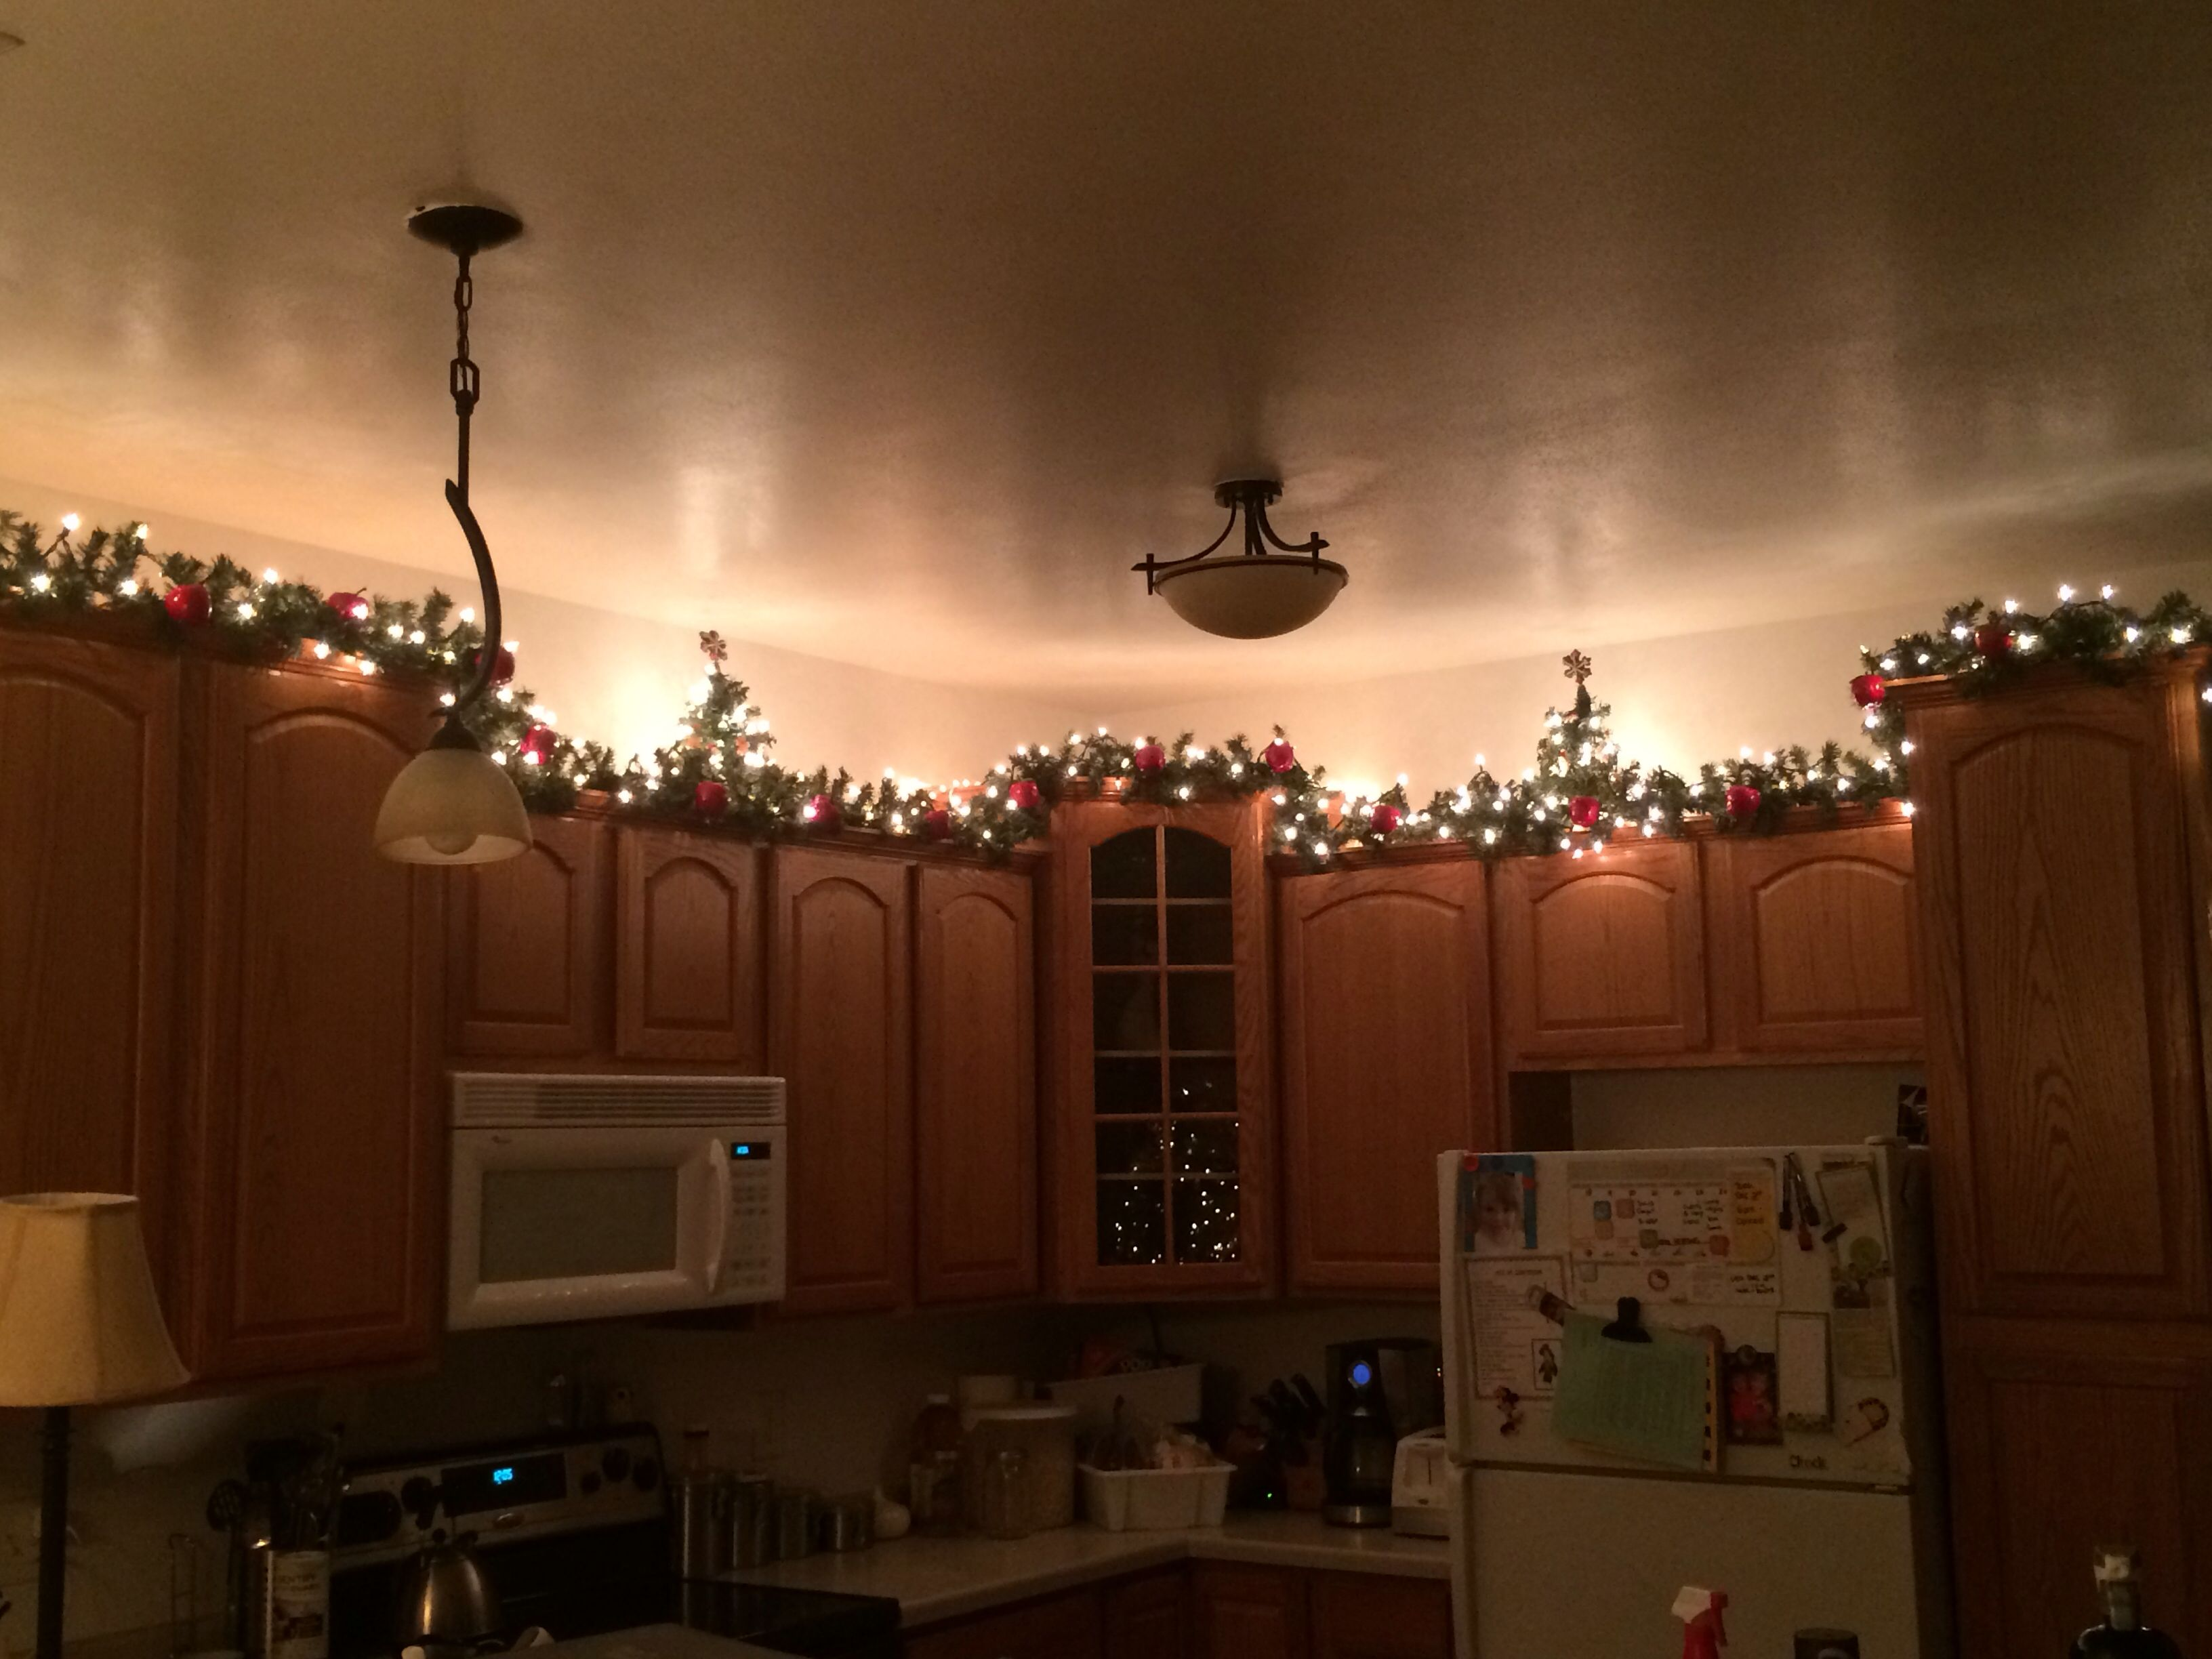 Christmas Garland W Lights And Apple Ornaments And Two Small Christmas Trees On My Kitchen Cabinet Christmas Deco Small Christmas Trees Christmas Inspiration